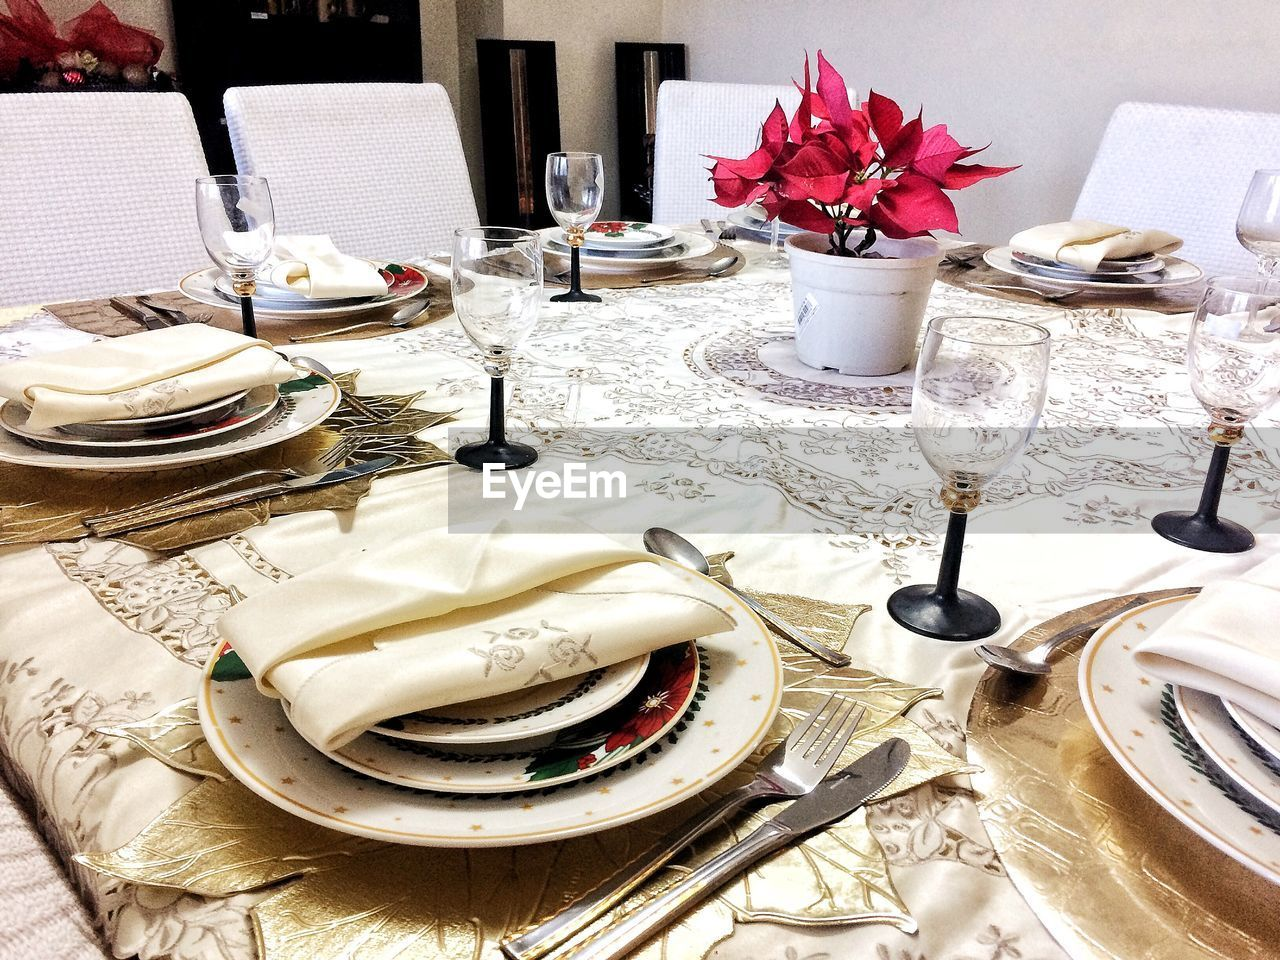 table, plate, kitchen utensil, eating utensil, flower, setting, place setting, flowering plant, spoon, household equipment, no people, food and drink, indoors, fork, knife, still life, tablecloth, freshness, dining table, glass, table knife, crockery